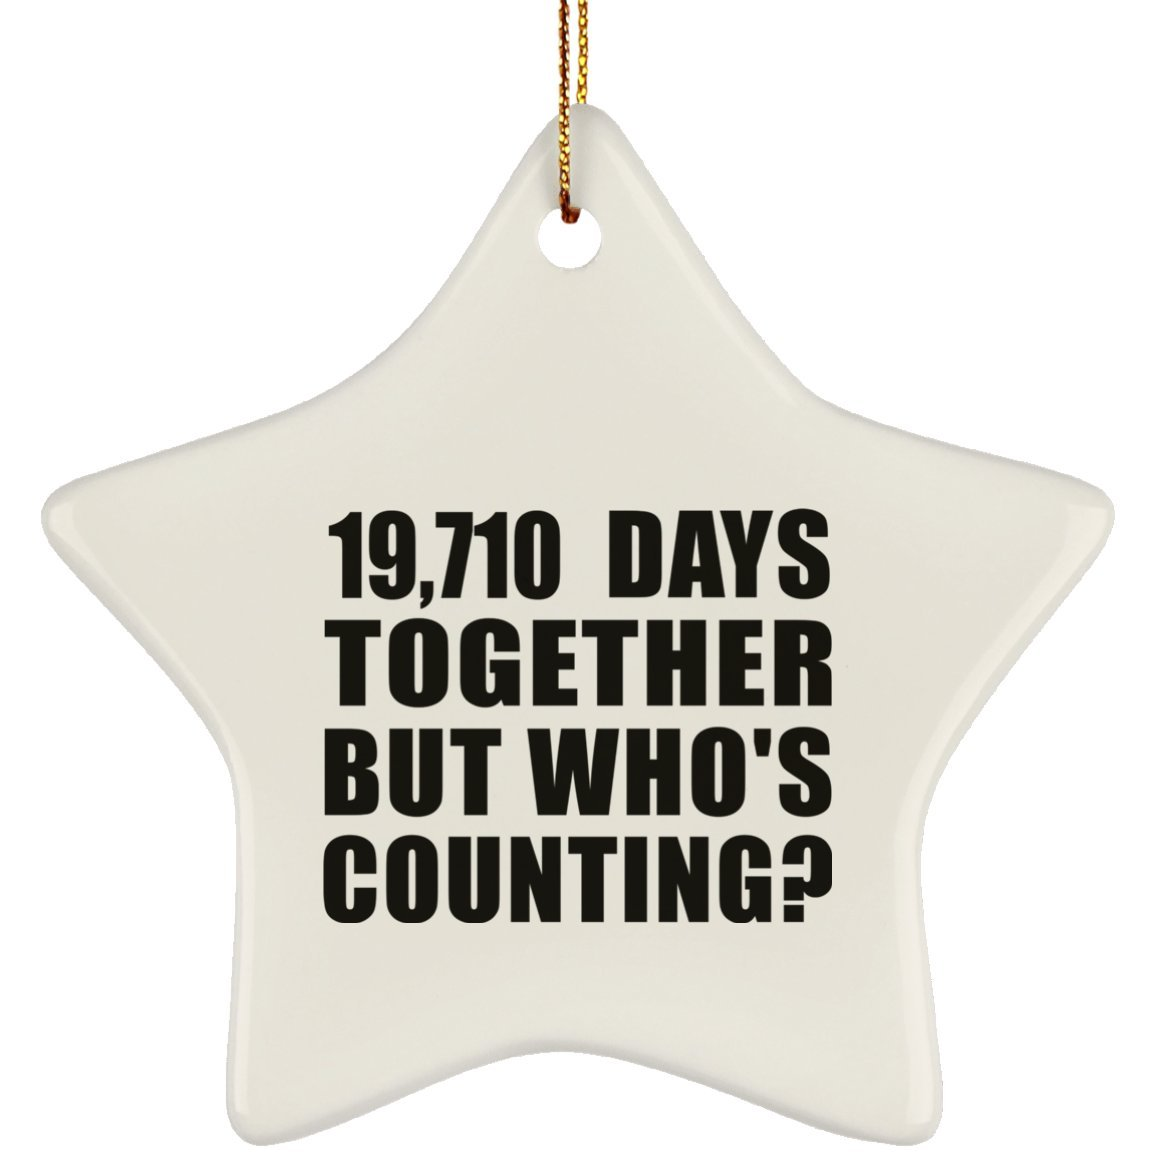 Gift for Wife Husband Wo-men Her Him Mother/'s Father/'s Day Birthday Anniversary Star Ornament Christmas Tree Ceramic Decor-ation 54th Anniversary 19,710 Days Together But Whos Counting